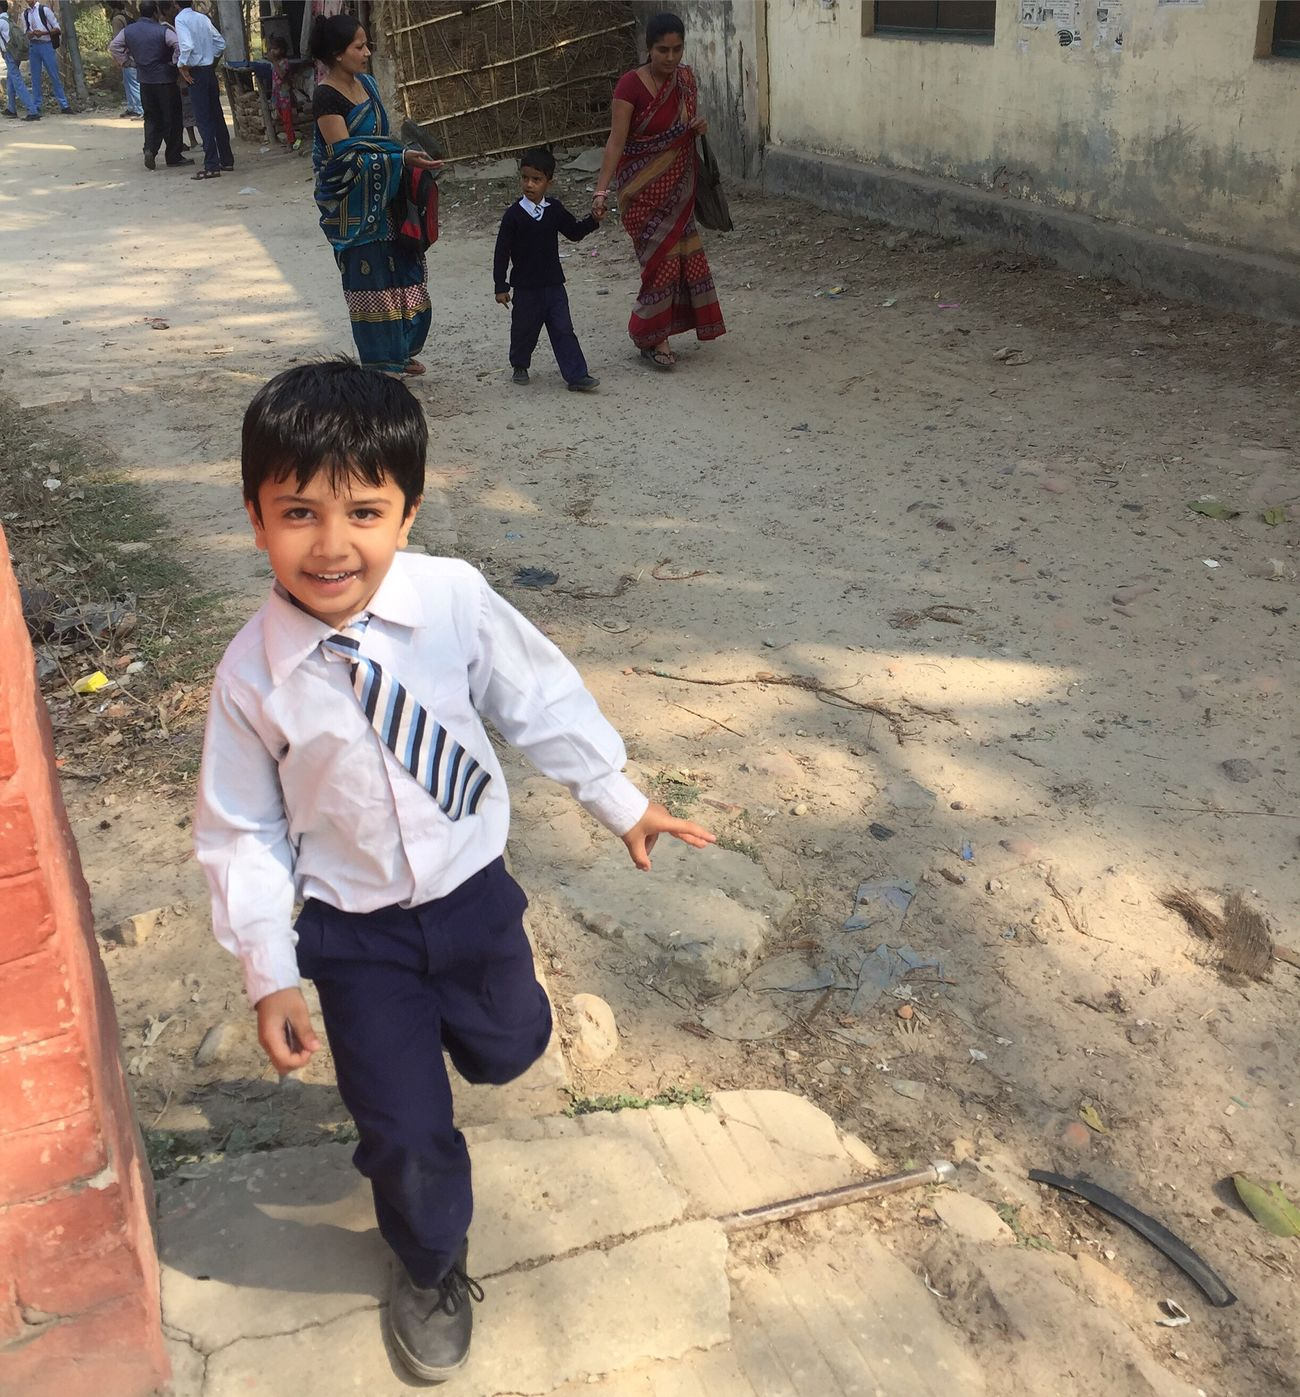 My Son Harshit Happy afrter School Time ;) School Uniforms Around The World